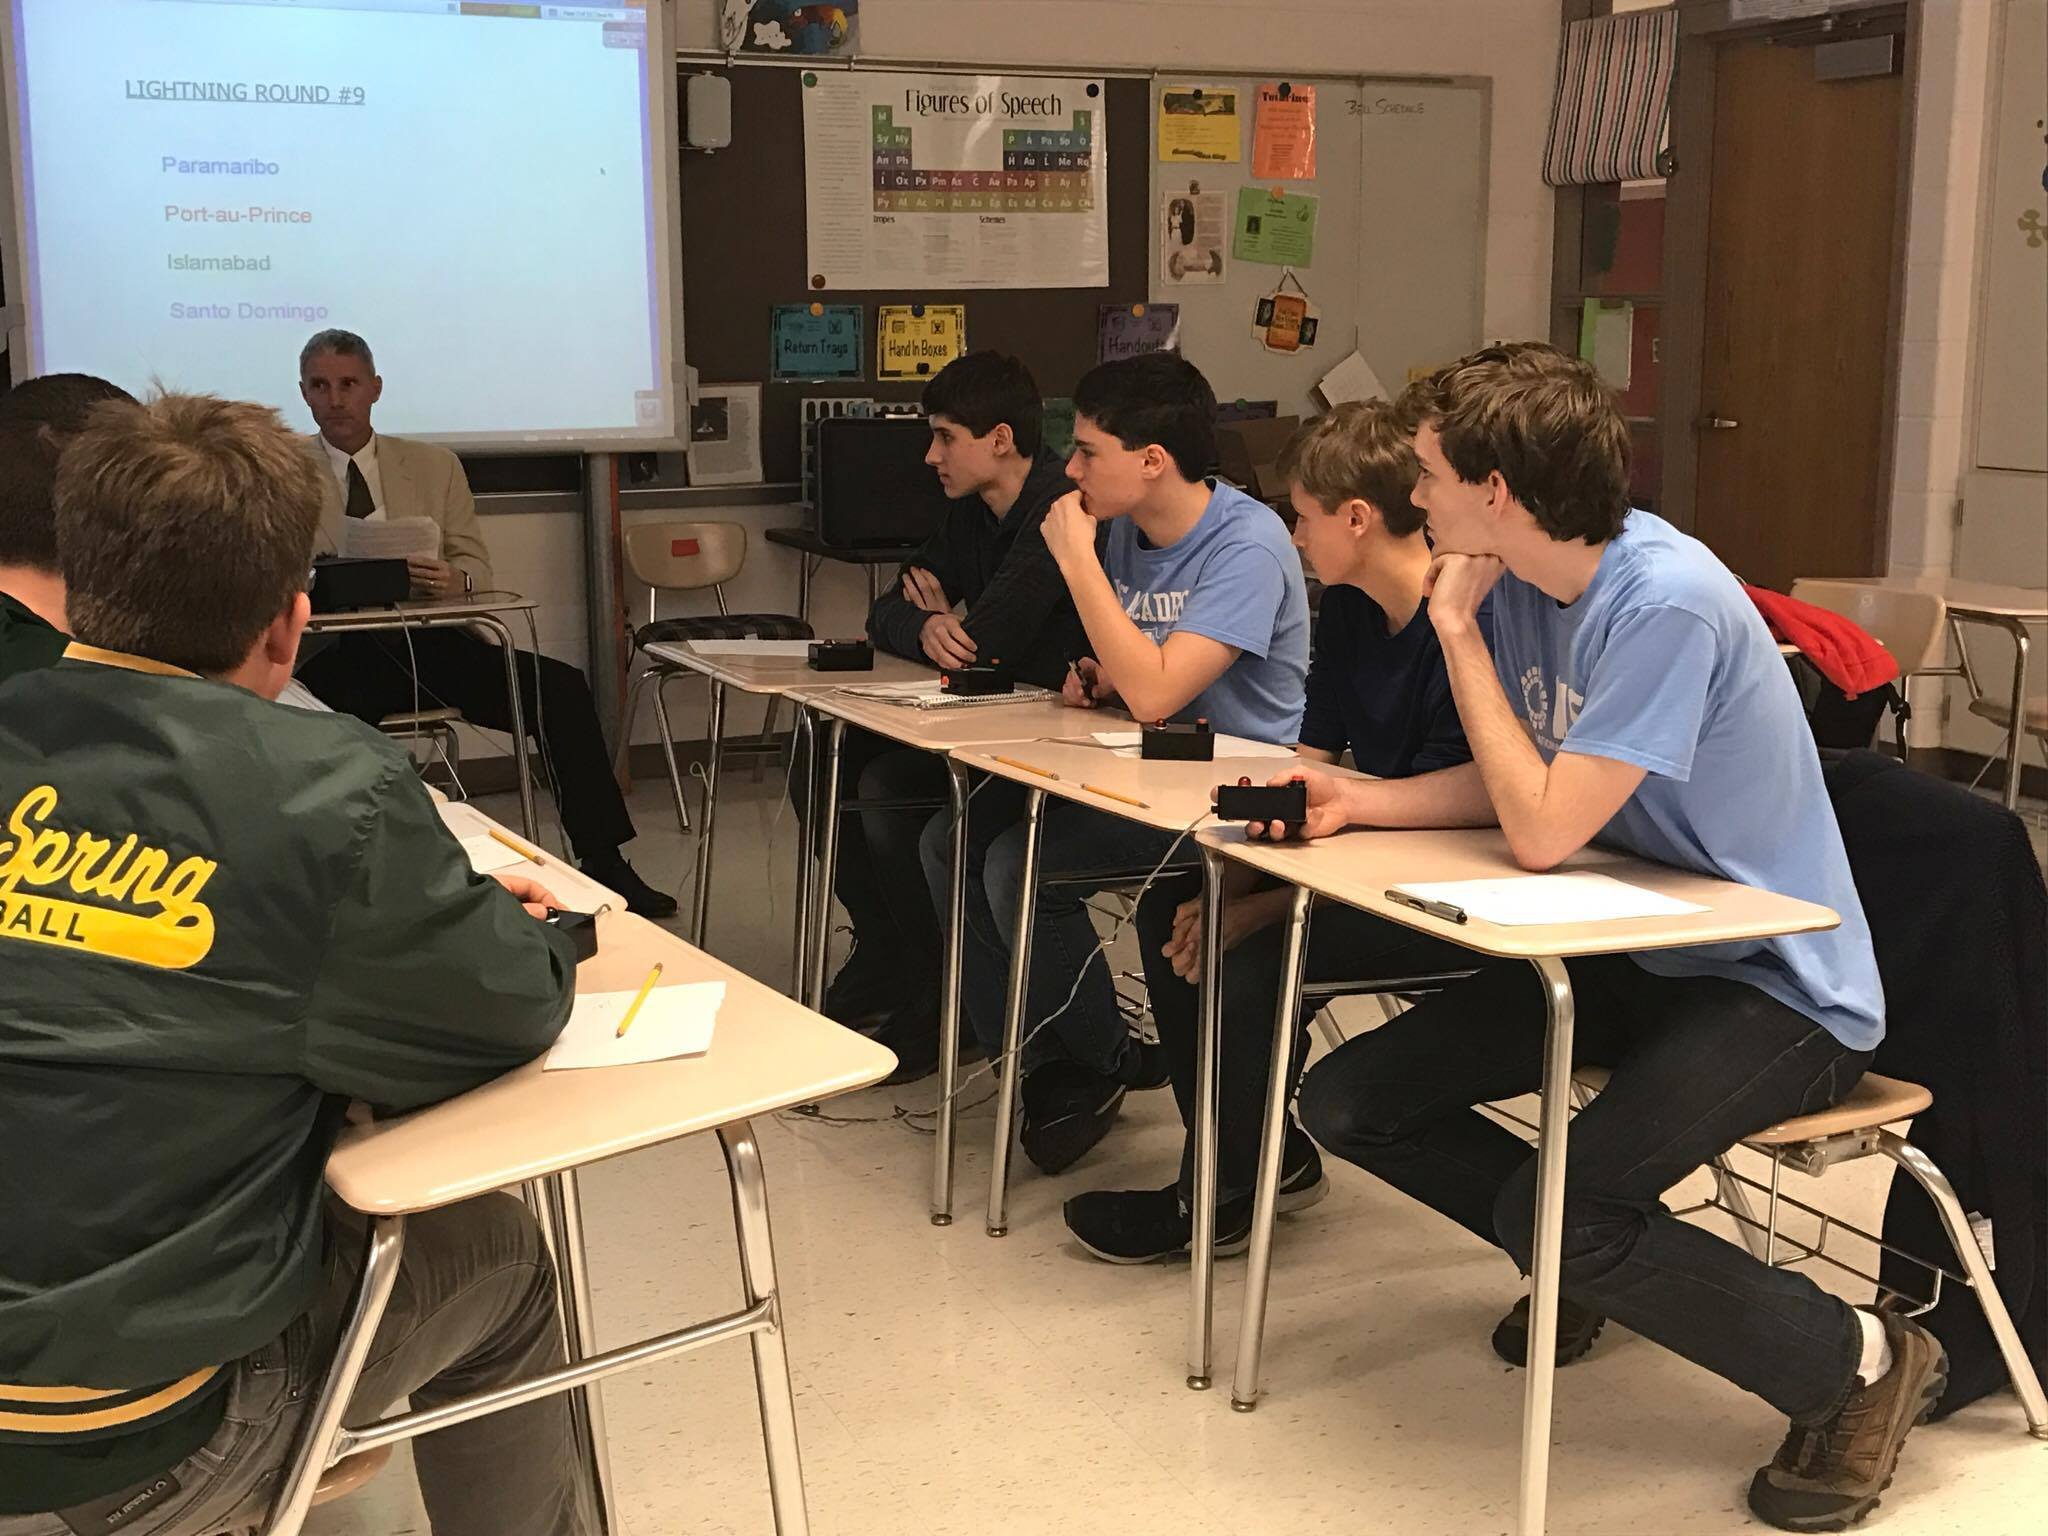 Senior Michael Hepburn, senior Ellis London, junior Braden Longstreth, and freshman Nate Olson practice buzzing in to answer questions as they prepare for their final's match Feb. 23 at Blair High School. Photo by Julie Rosenstein.